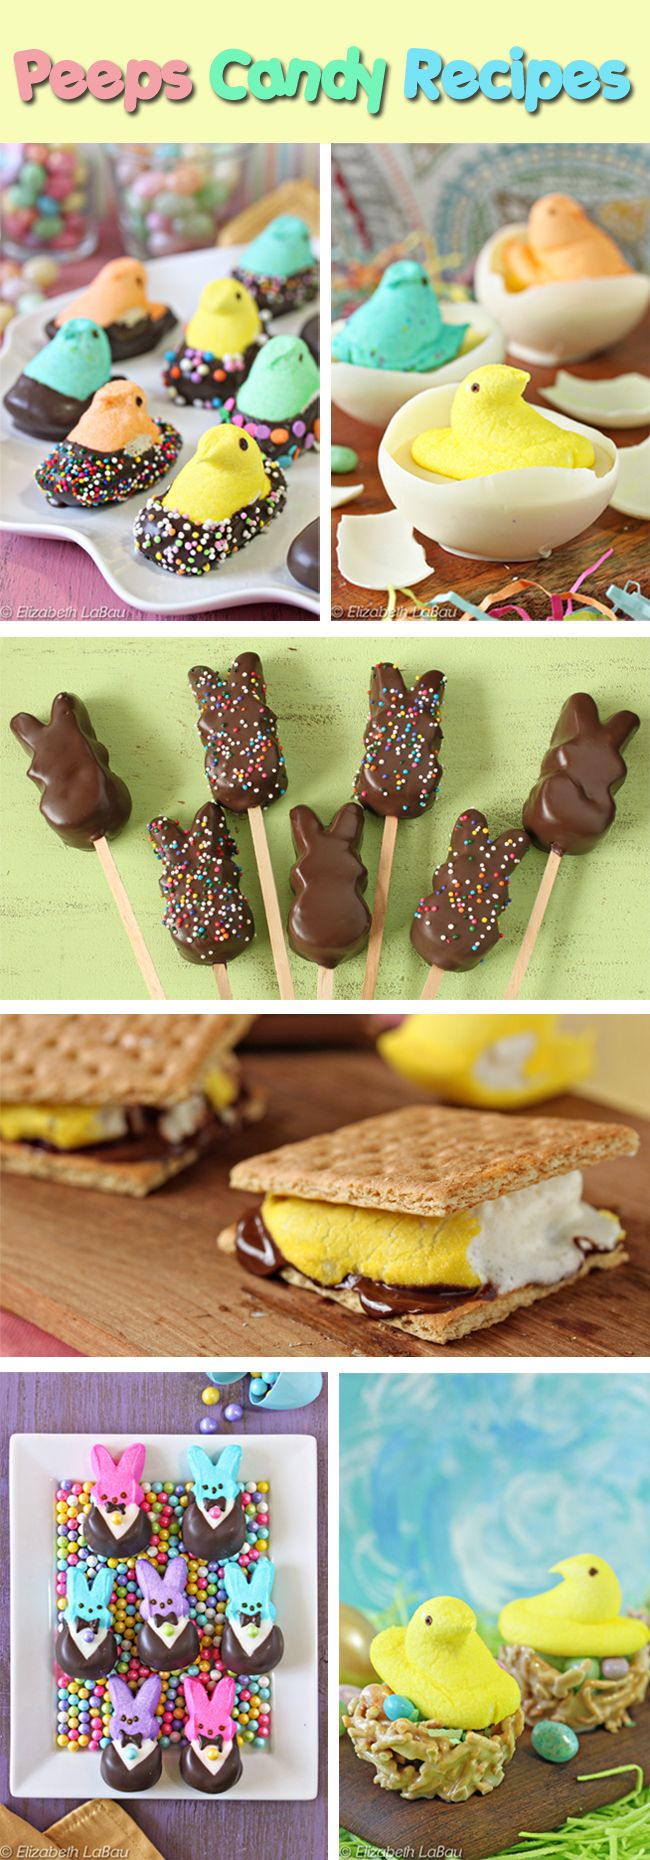 Peeps are good, but we all know they're better when you combine them with chocolate! Find the best Peeps candy recipes here, including Peeps Pops, Tuxedo Bunny Peeps, and Peeps S'mores! | From candy.about.com